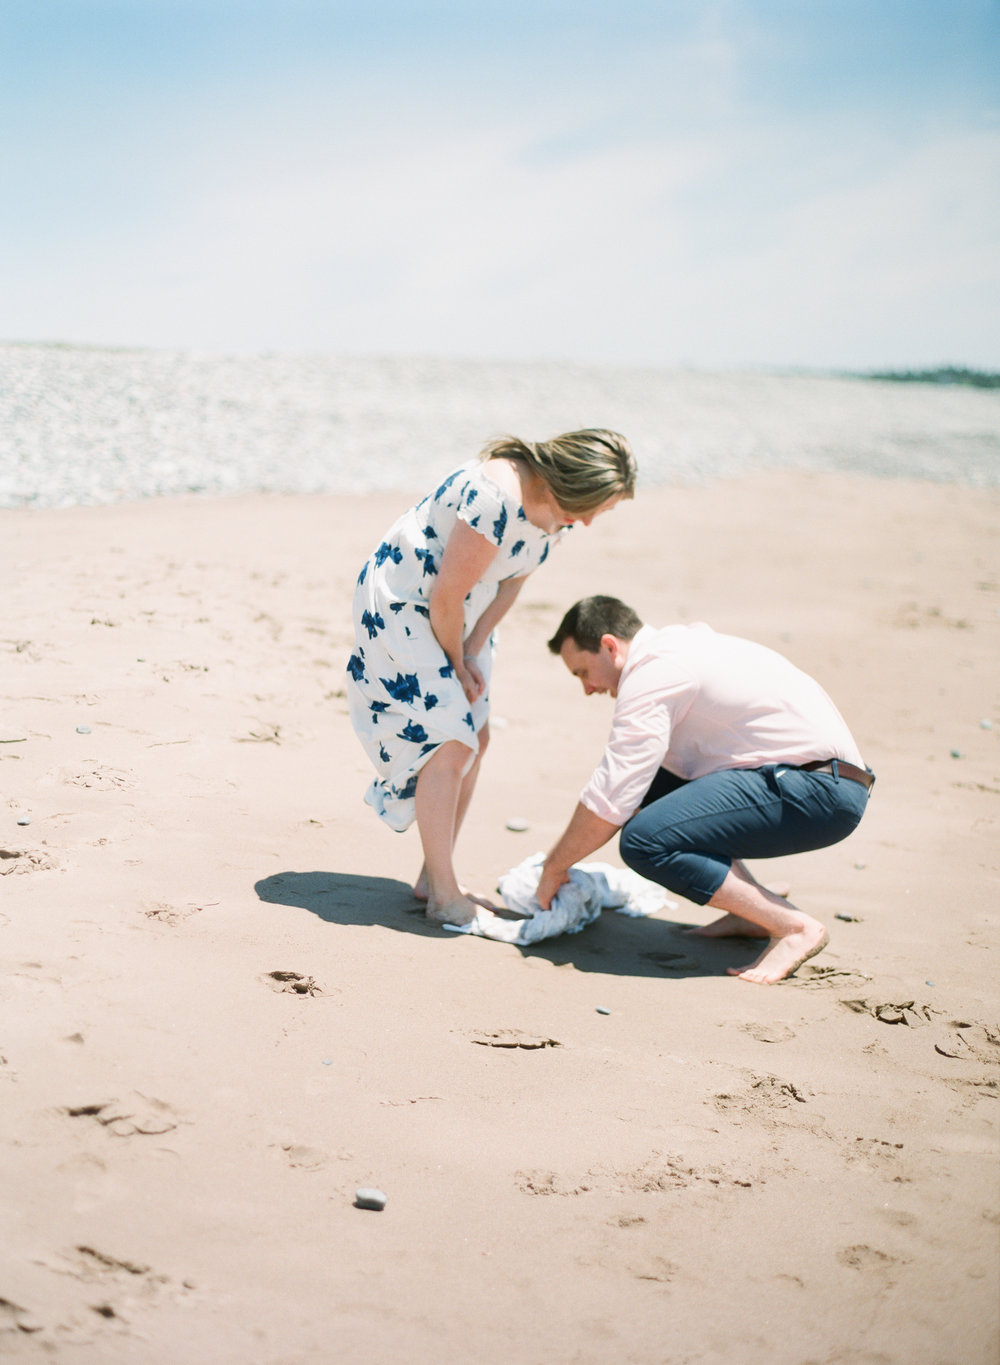 Jacqueline Anne Photography-Melissa and Daniel - Contax 645 - Beach Full Sun-24-10.jpg